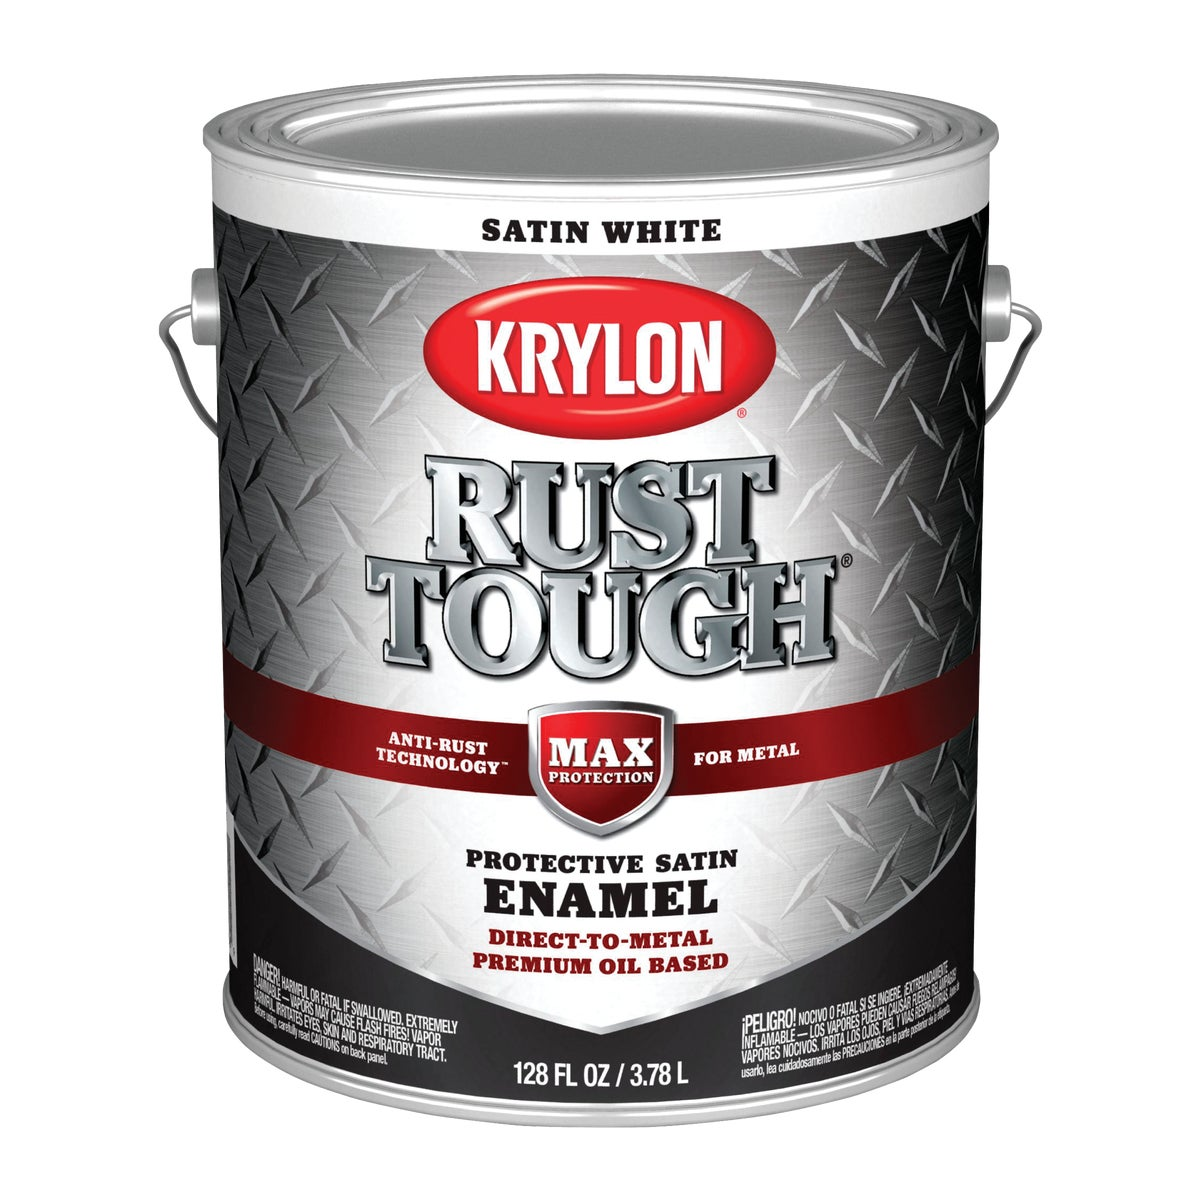 SATIN WHITE RUST ENAMEL - 044.0021820.007 by Valspar Corp